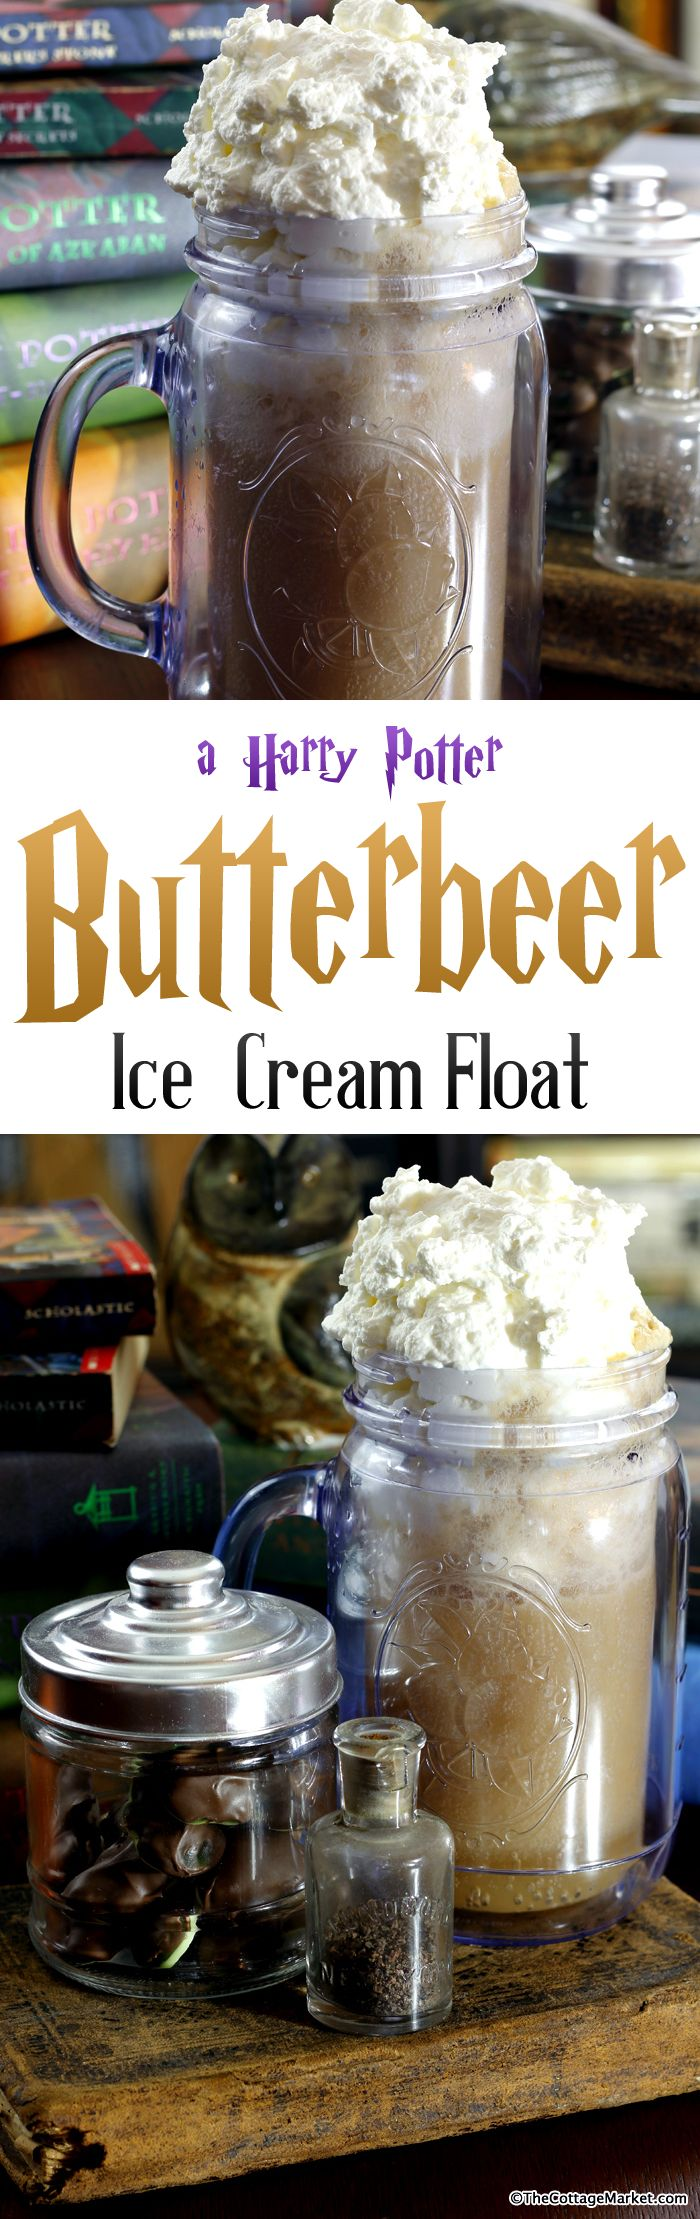 Harry Potter's Homemade Butterbeer Float - The Cottage Market